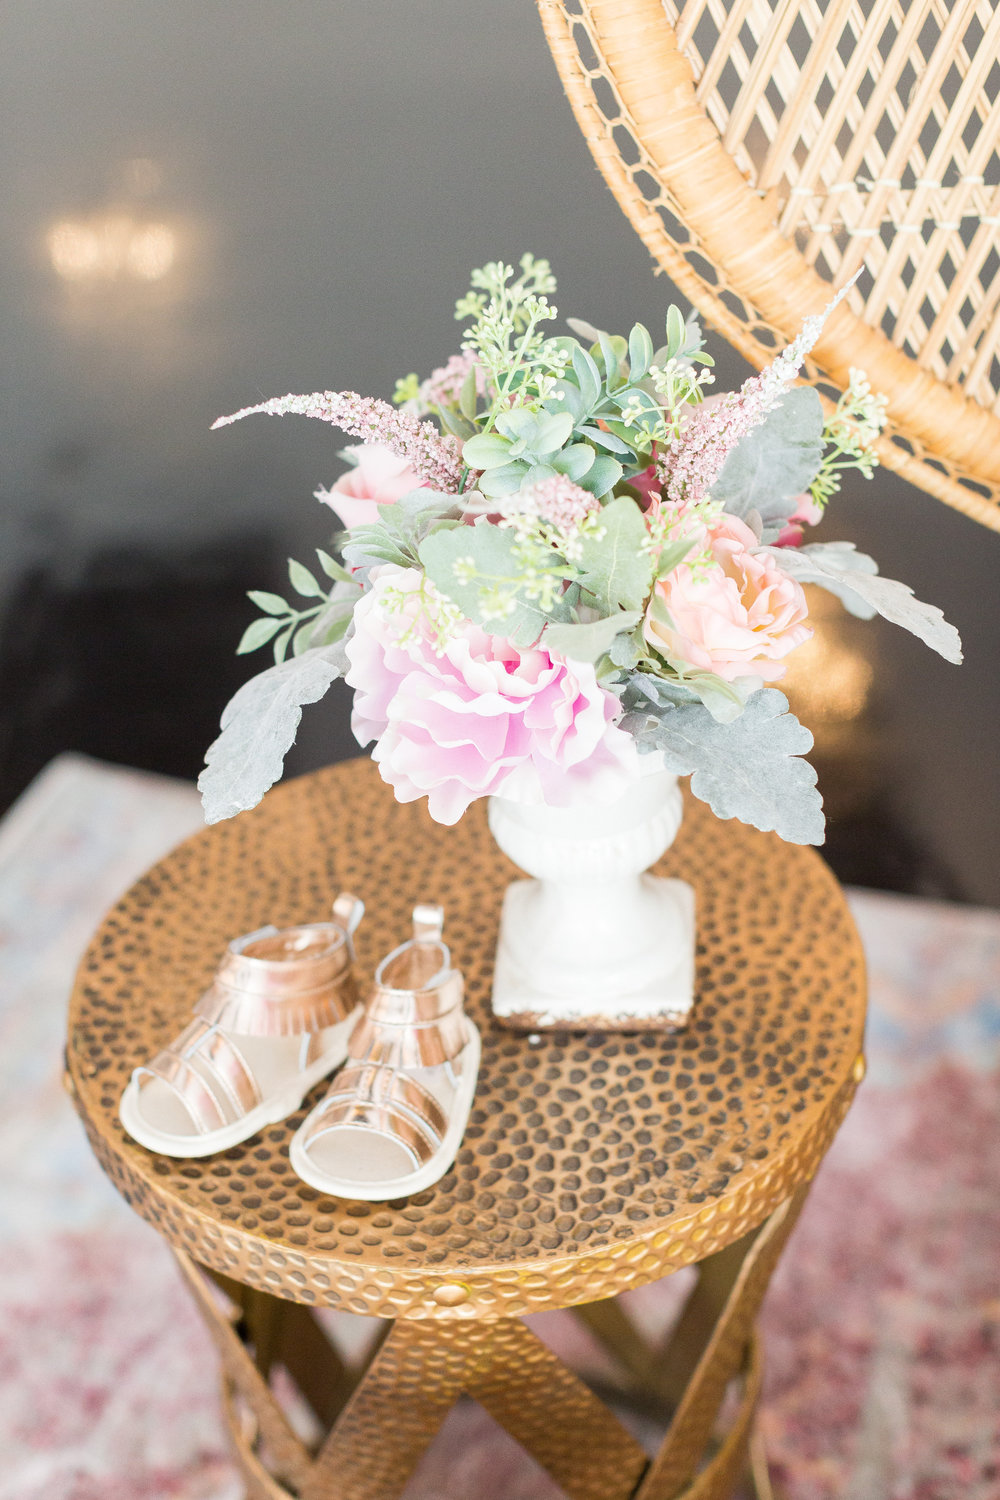 Modern Meets Bohemian Baby Shower with Tremaine Ranch Wedding Event Tableware Vintage Rentals Arizona35.jpg